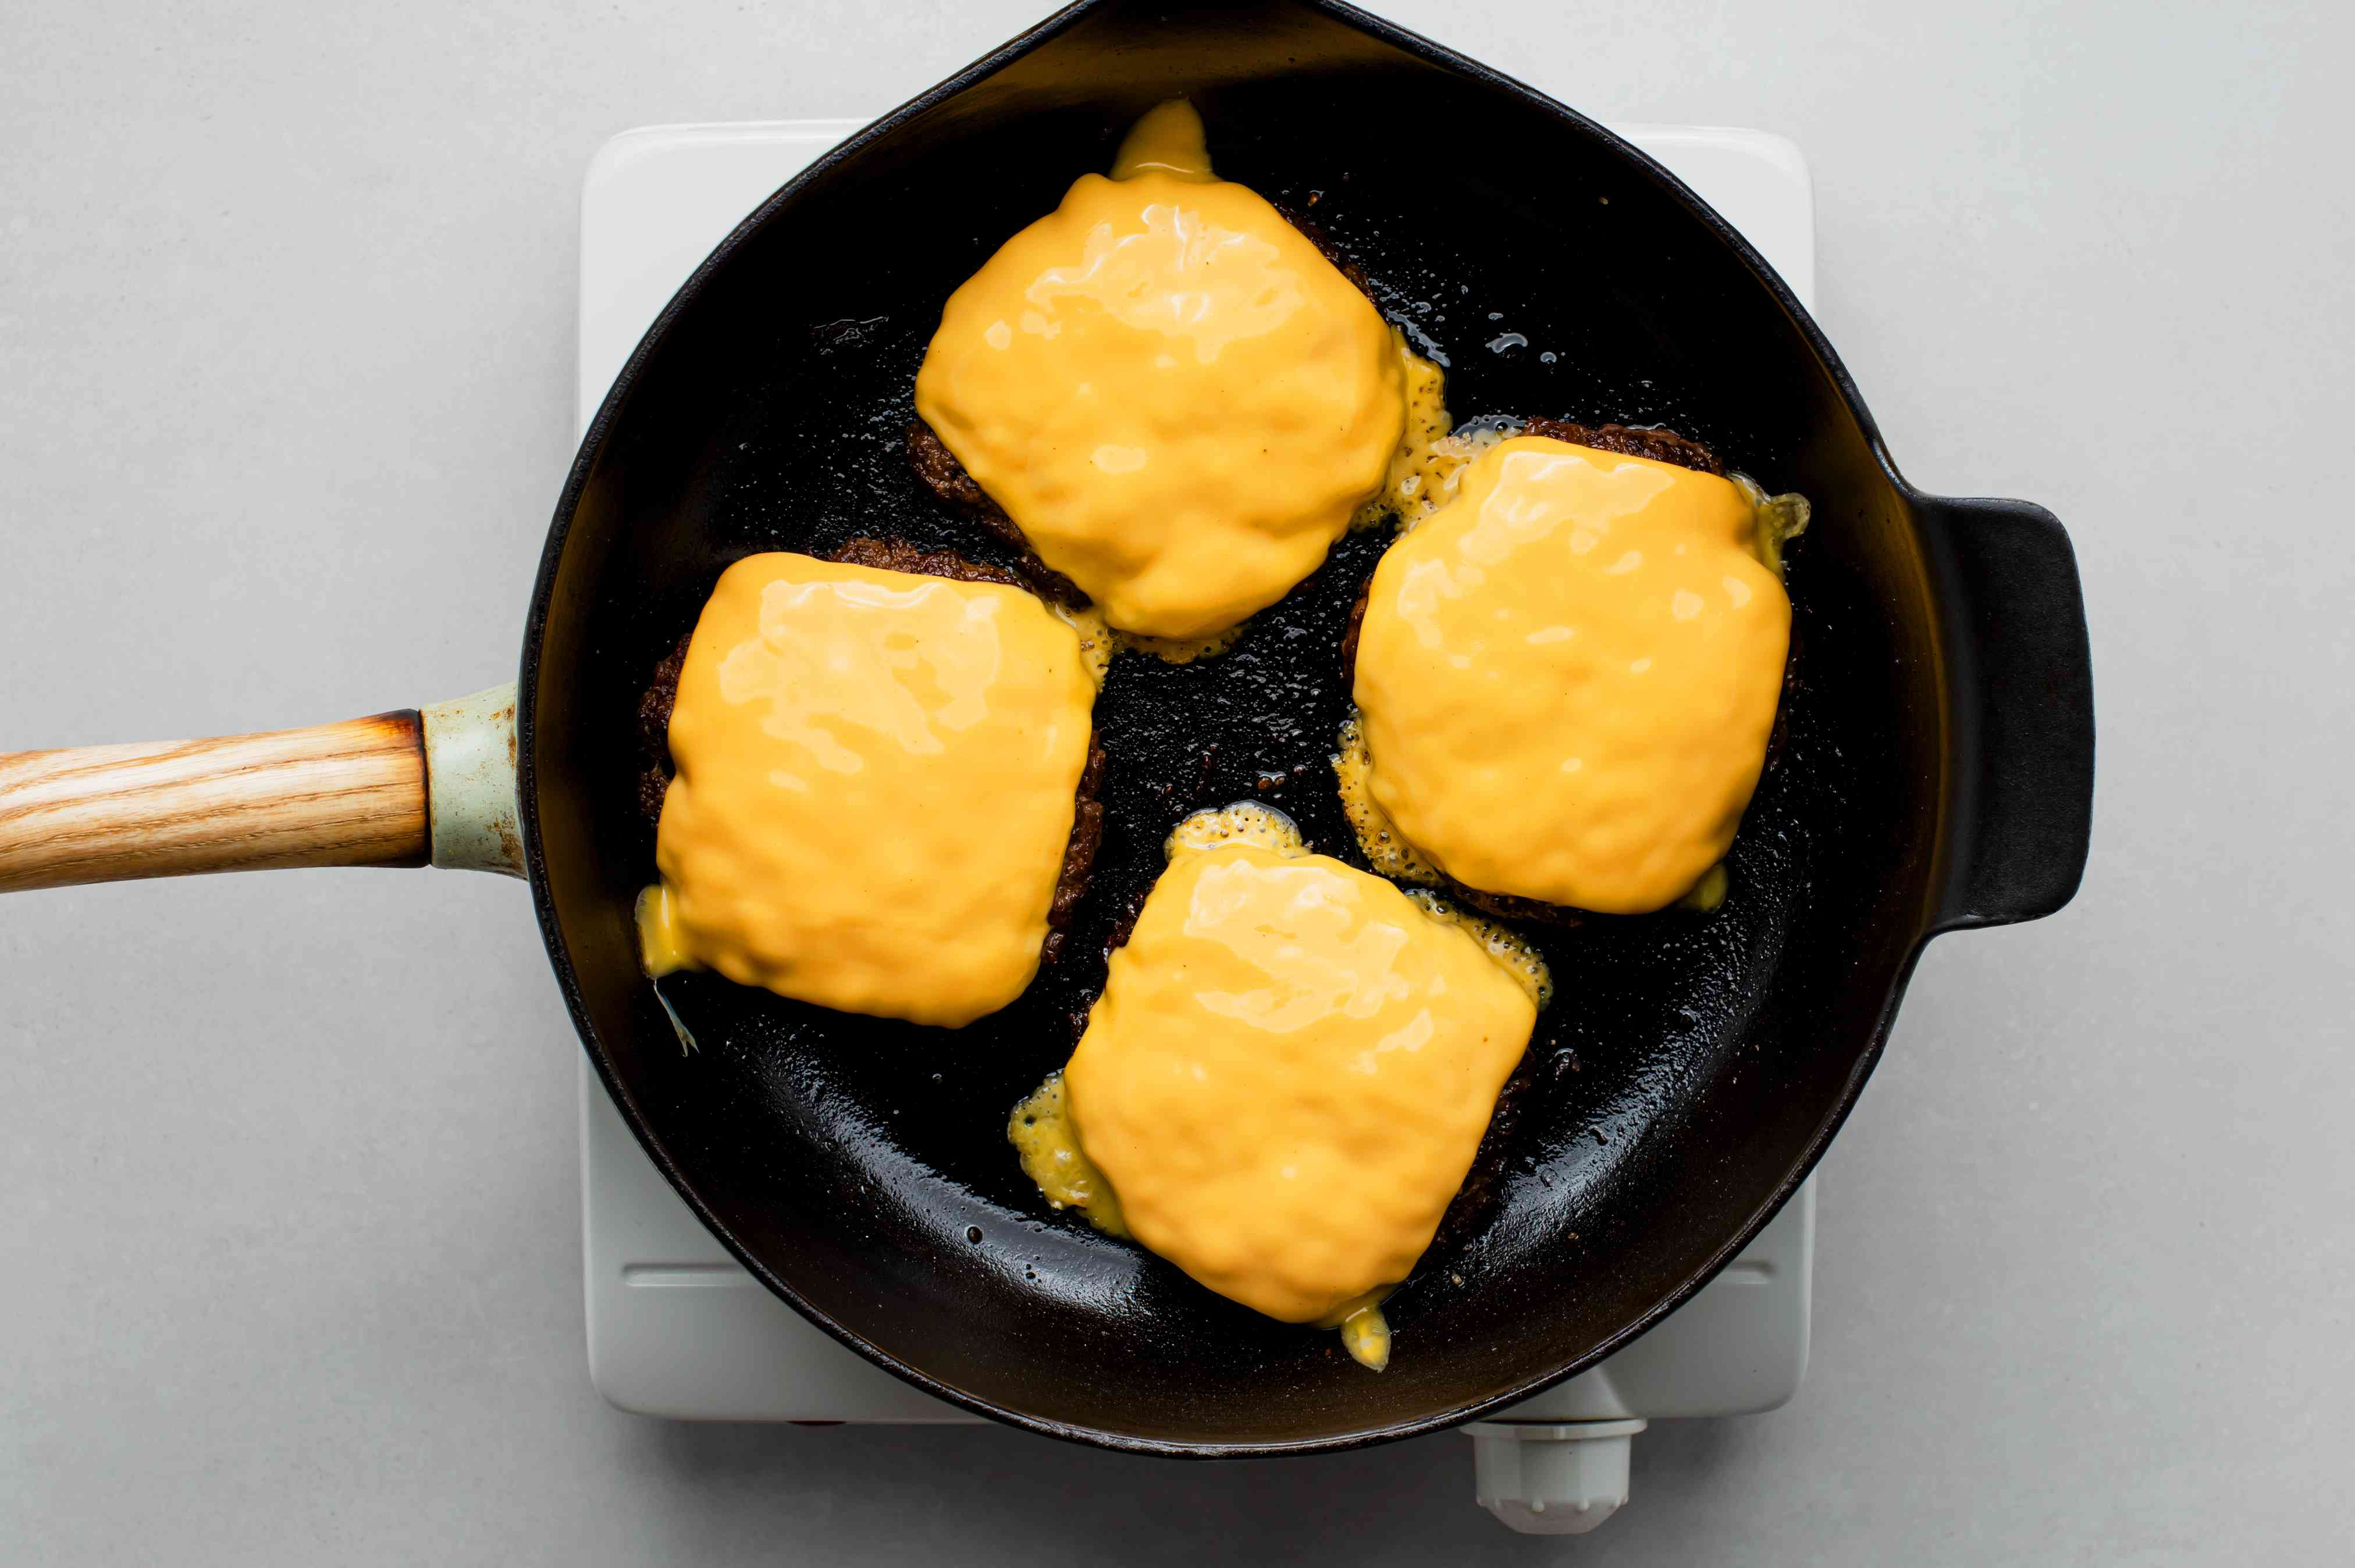 beef patties with cheese in a frying pan